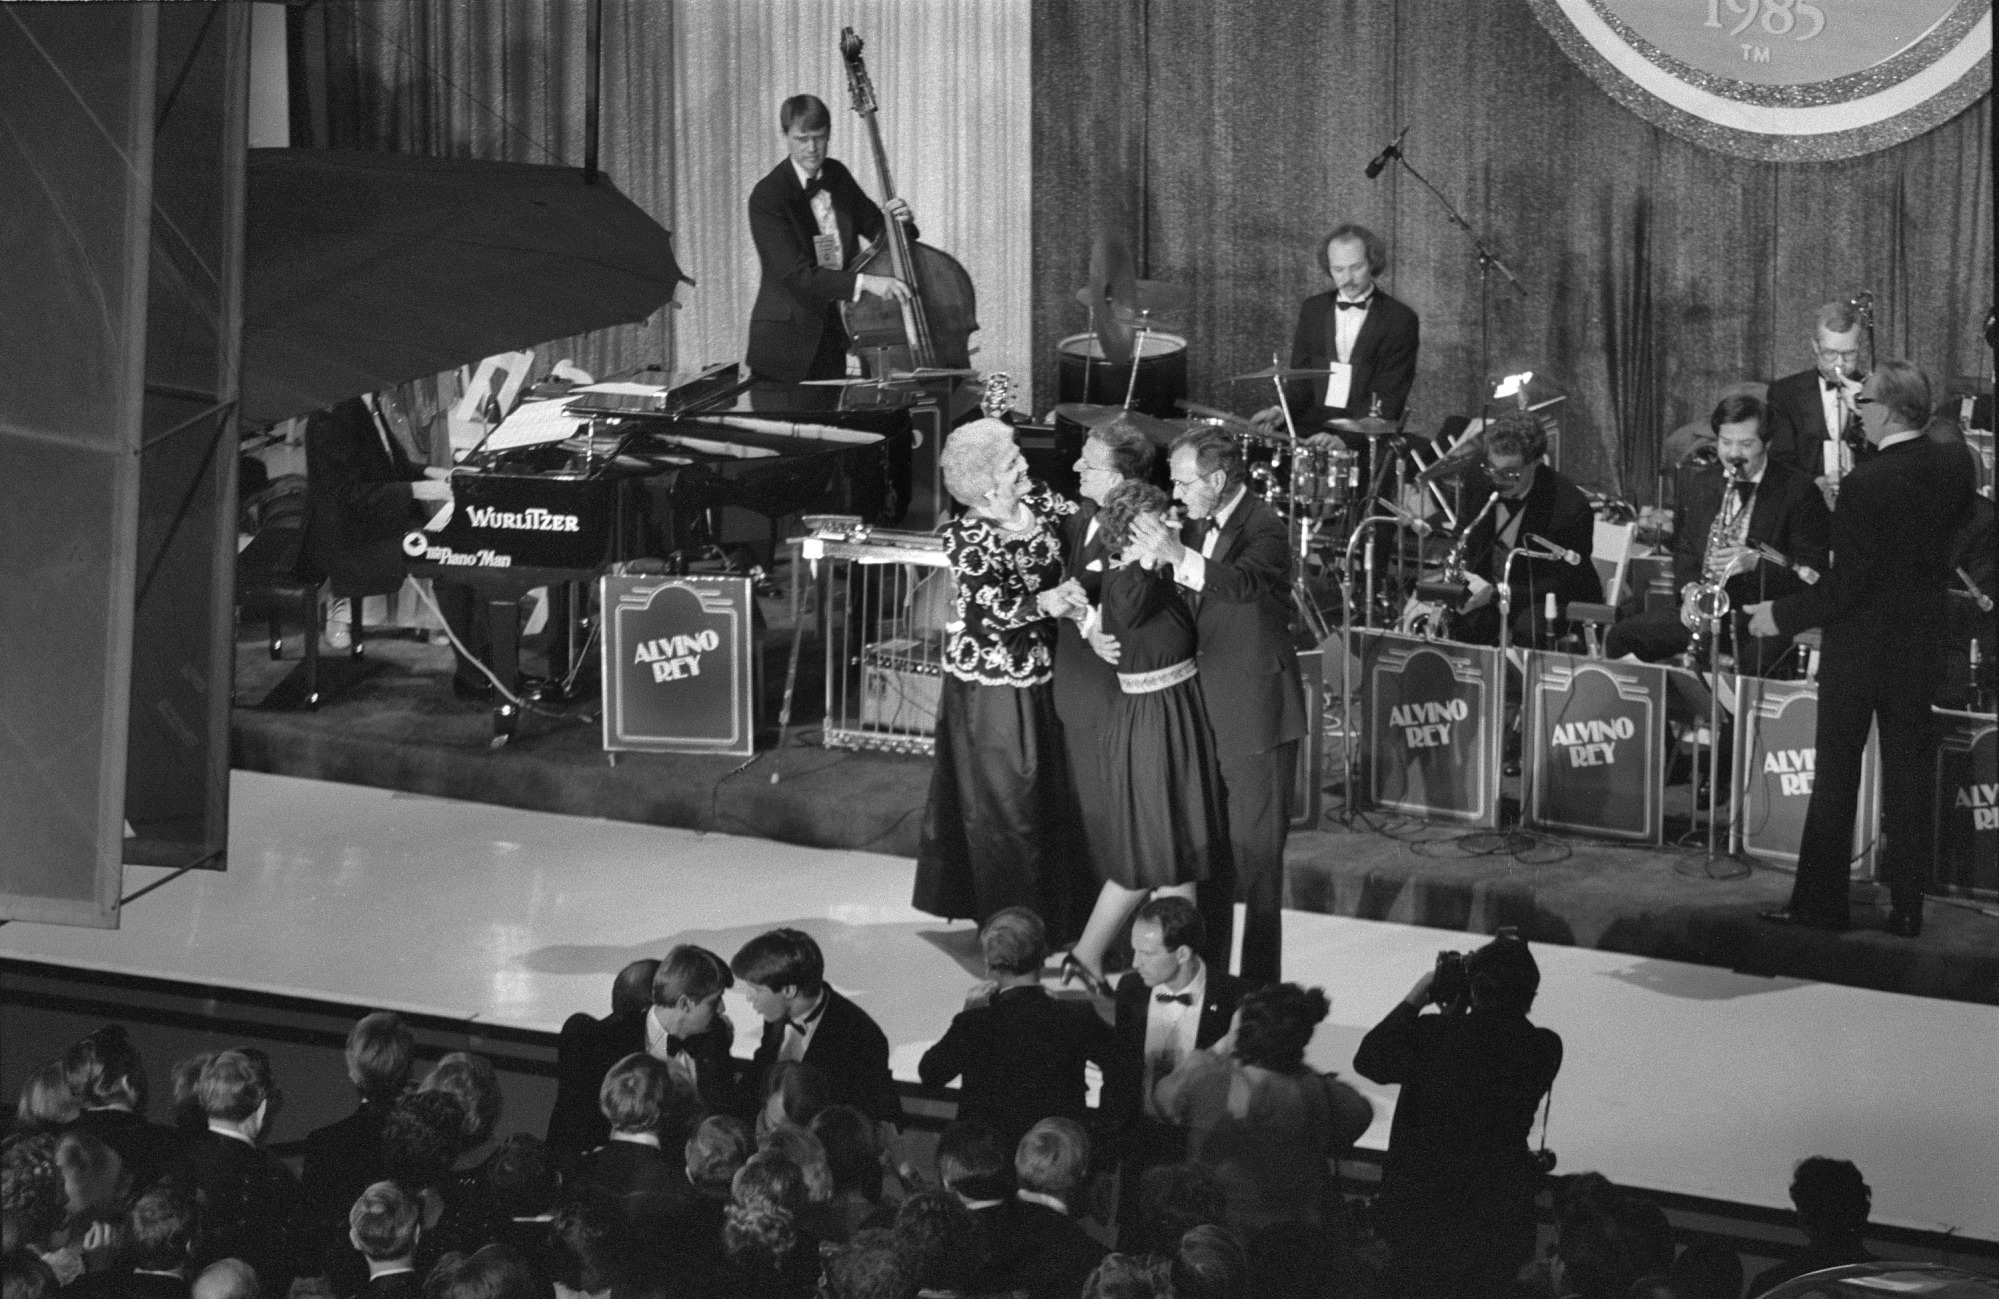 Vice-President George H. W. Bush and Mrs. Barbara Bush at 1985 Inaugural Ball, Smithsonian National Air and Space Museum, January 21, 1985